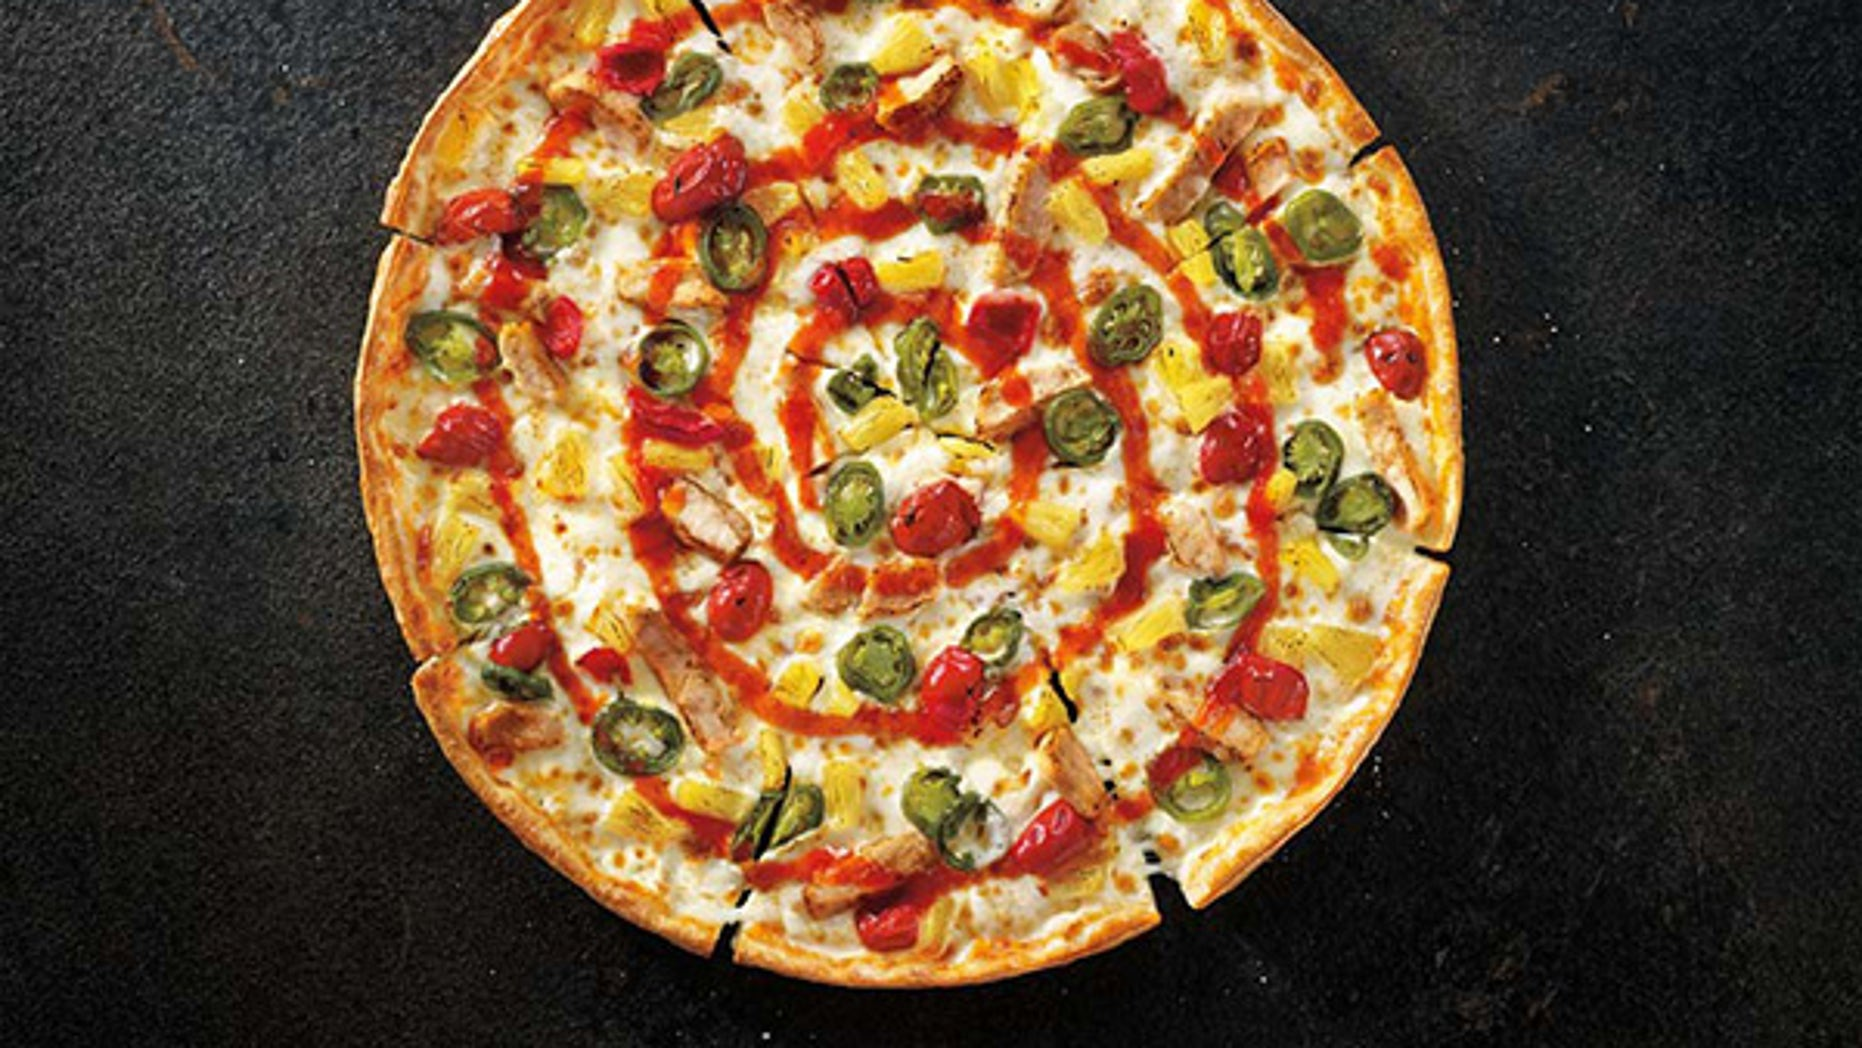 Pizza Hut's Sweet Sriracha Dynamite pizza may be too much for fast food consumer tastes.